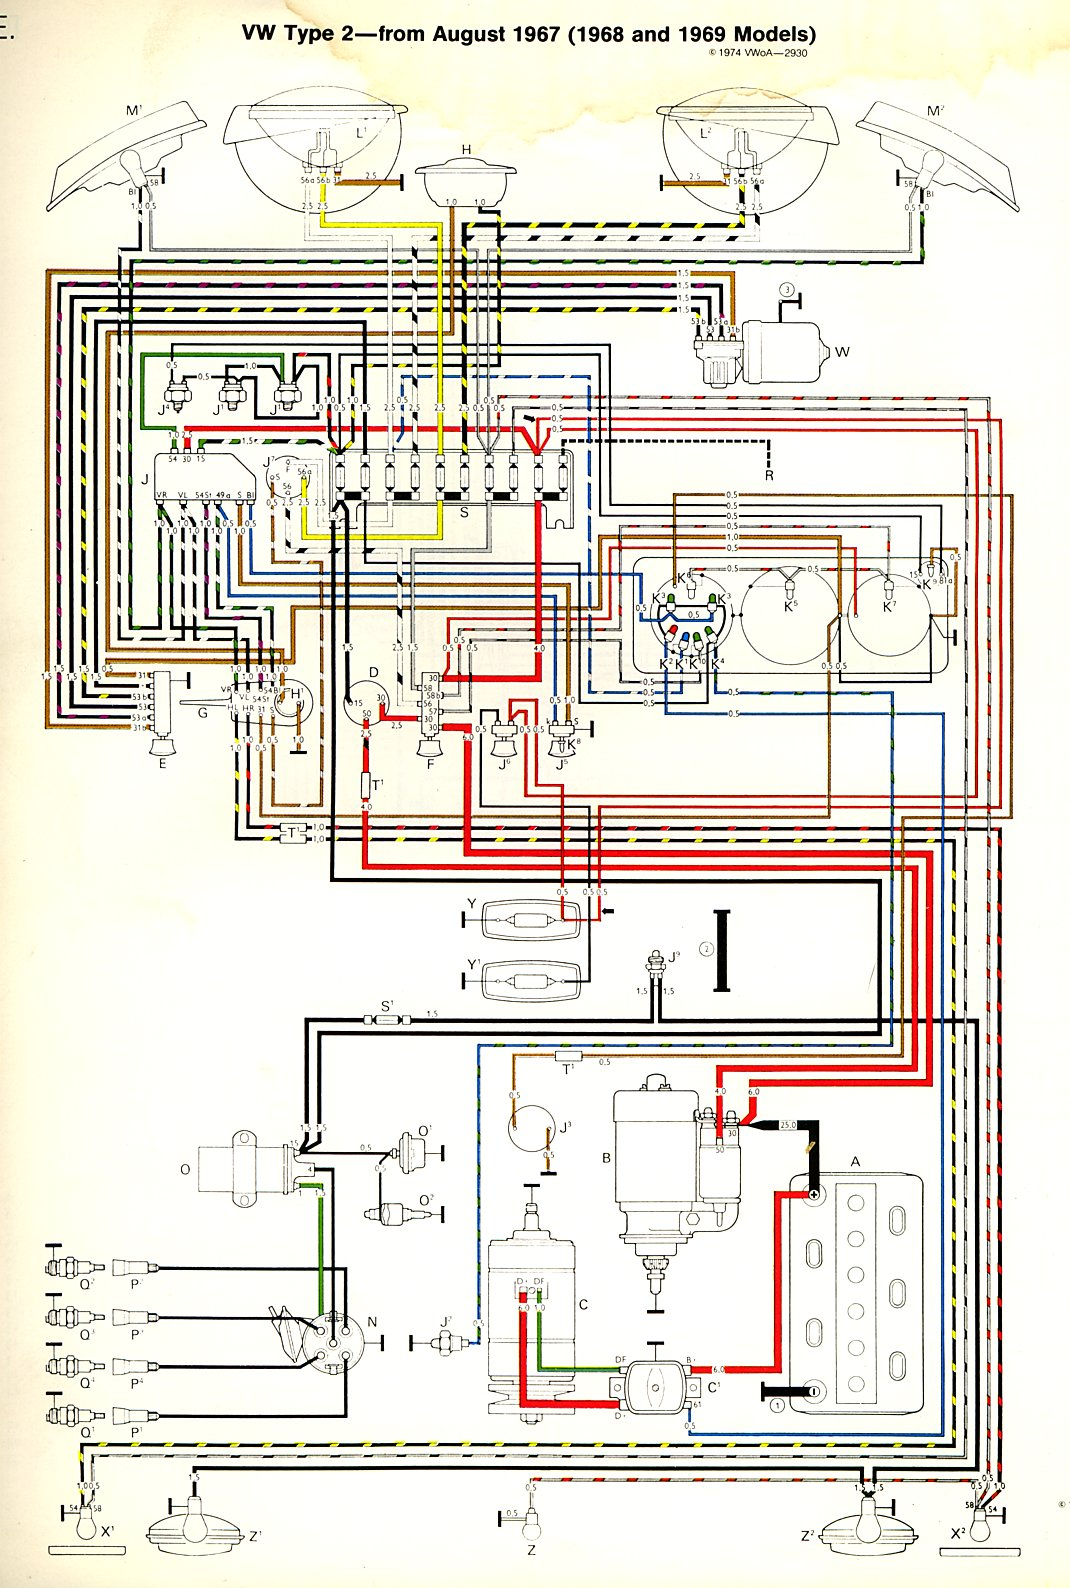 hight resolution of 1968 69 bus wiring diagram thegoldenbug com 1998 mazda b2500 fuse box diagram vw bus fuse box diagram